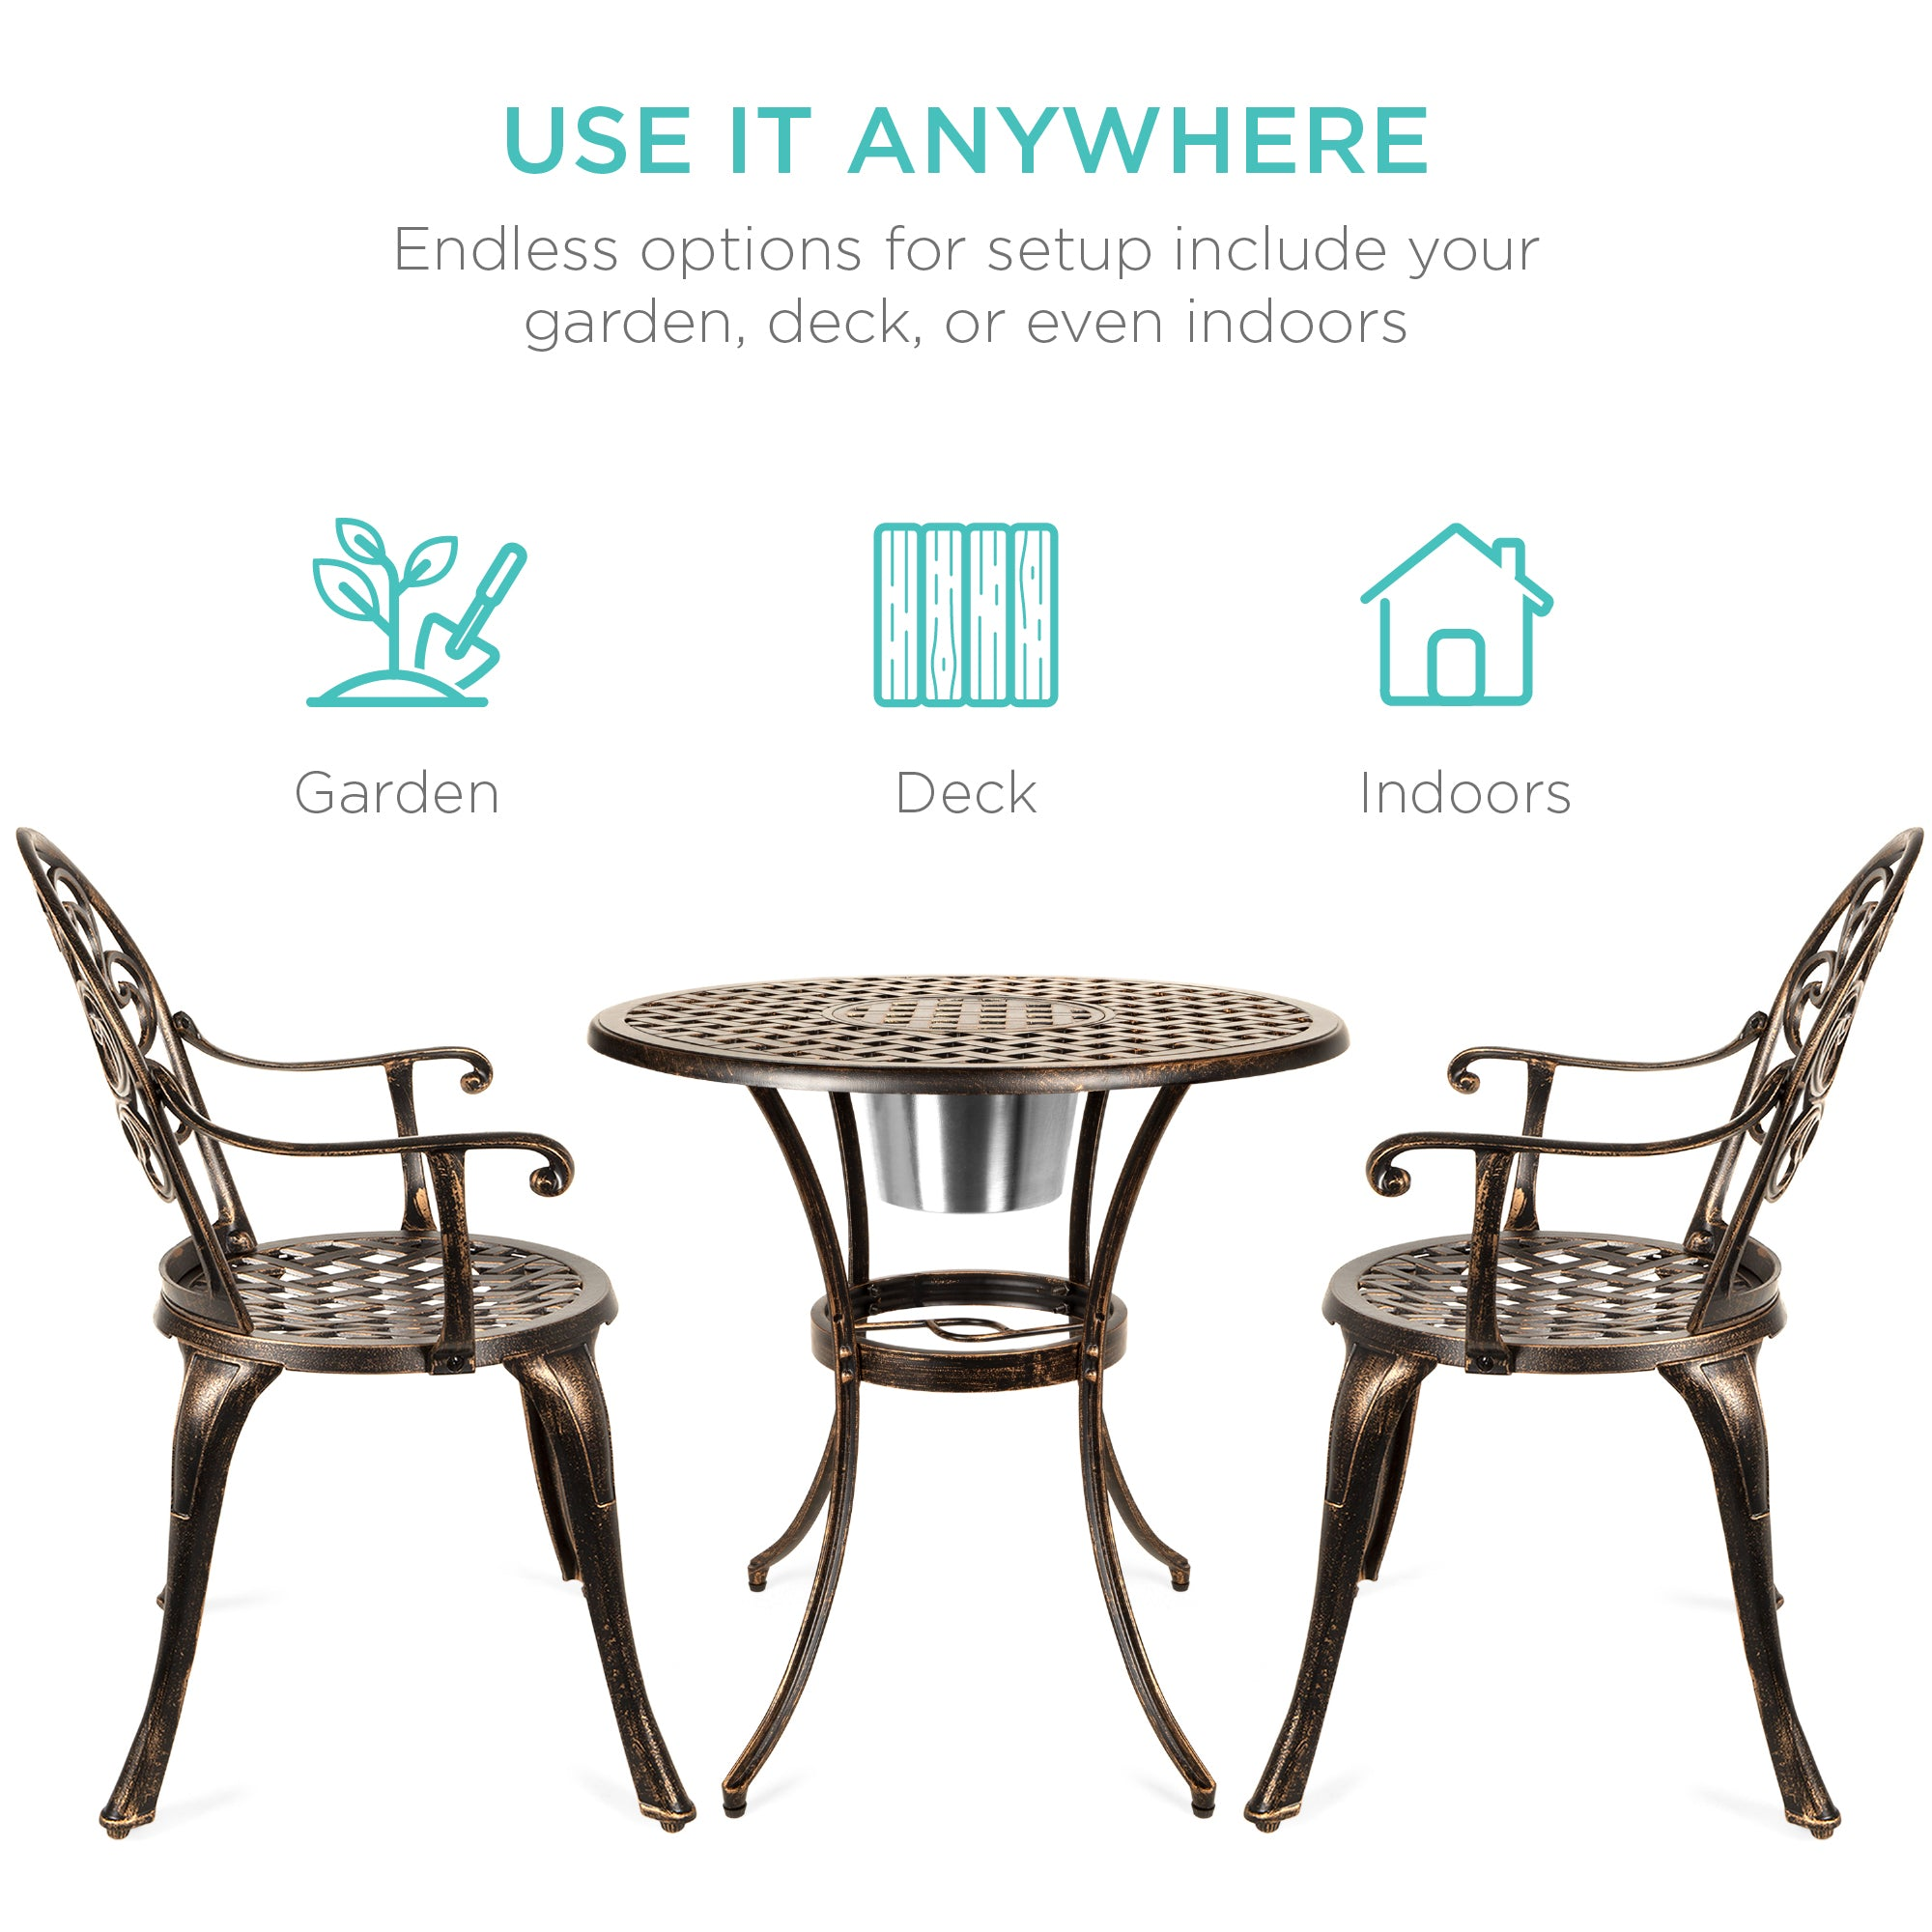 Cast Aluminum Patio Bistro Set w/ Ice Bucket, Chairs - Copper ...